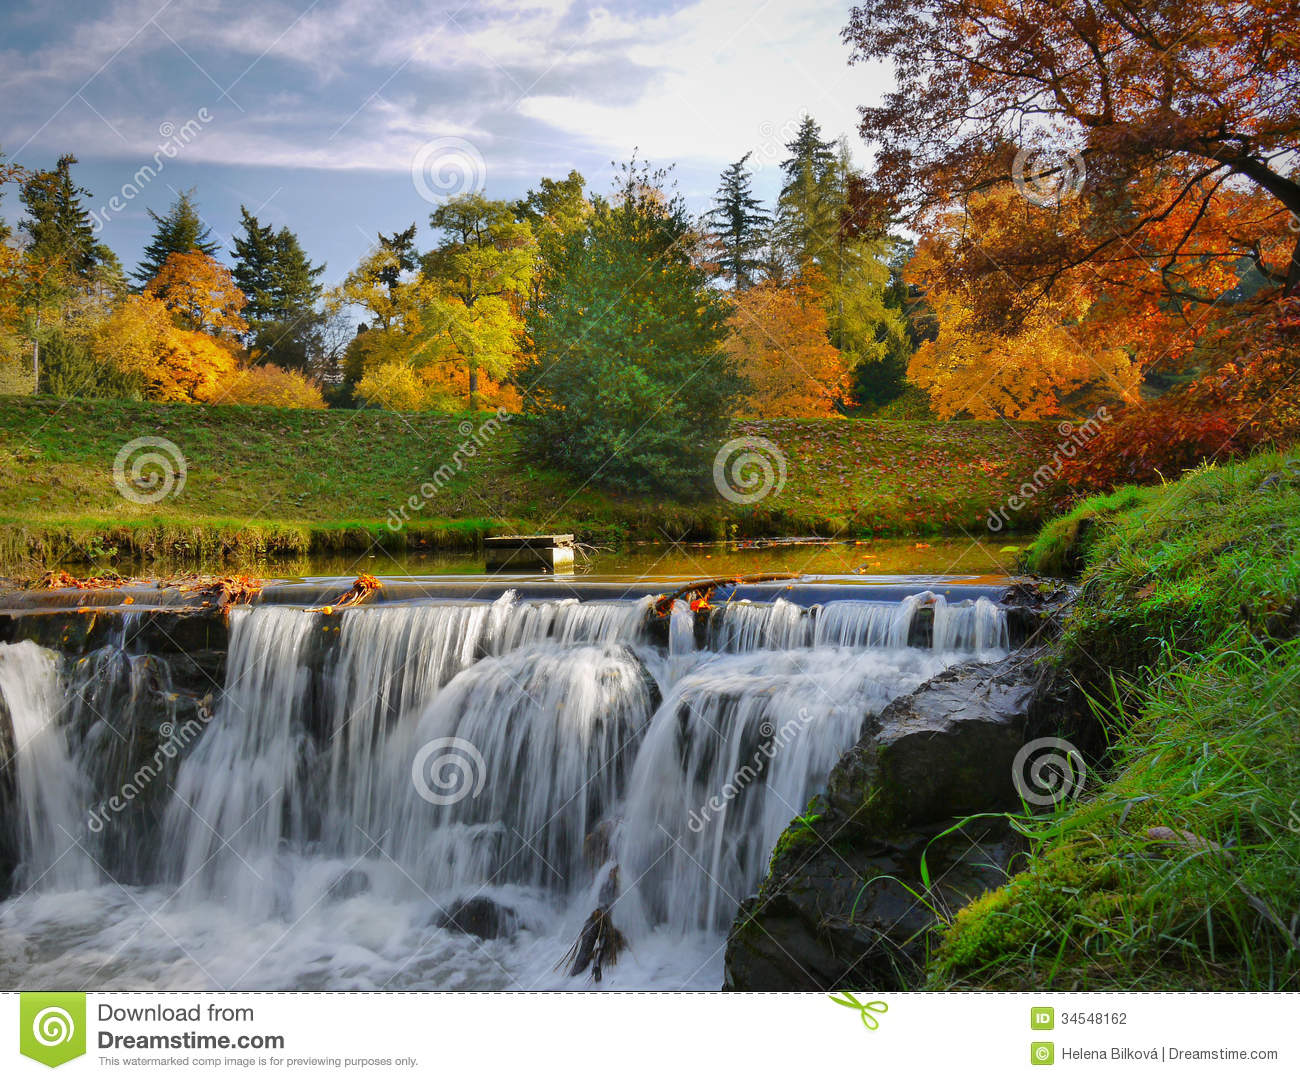 Fall Leaves Wallpaper Windows 7 Autumn Scenery Waterfalls Park Landscape Stock Photography